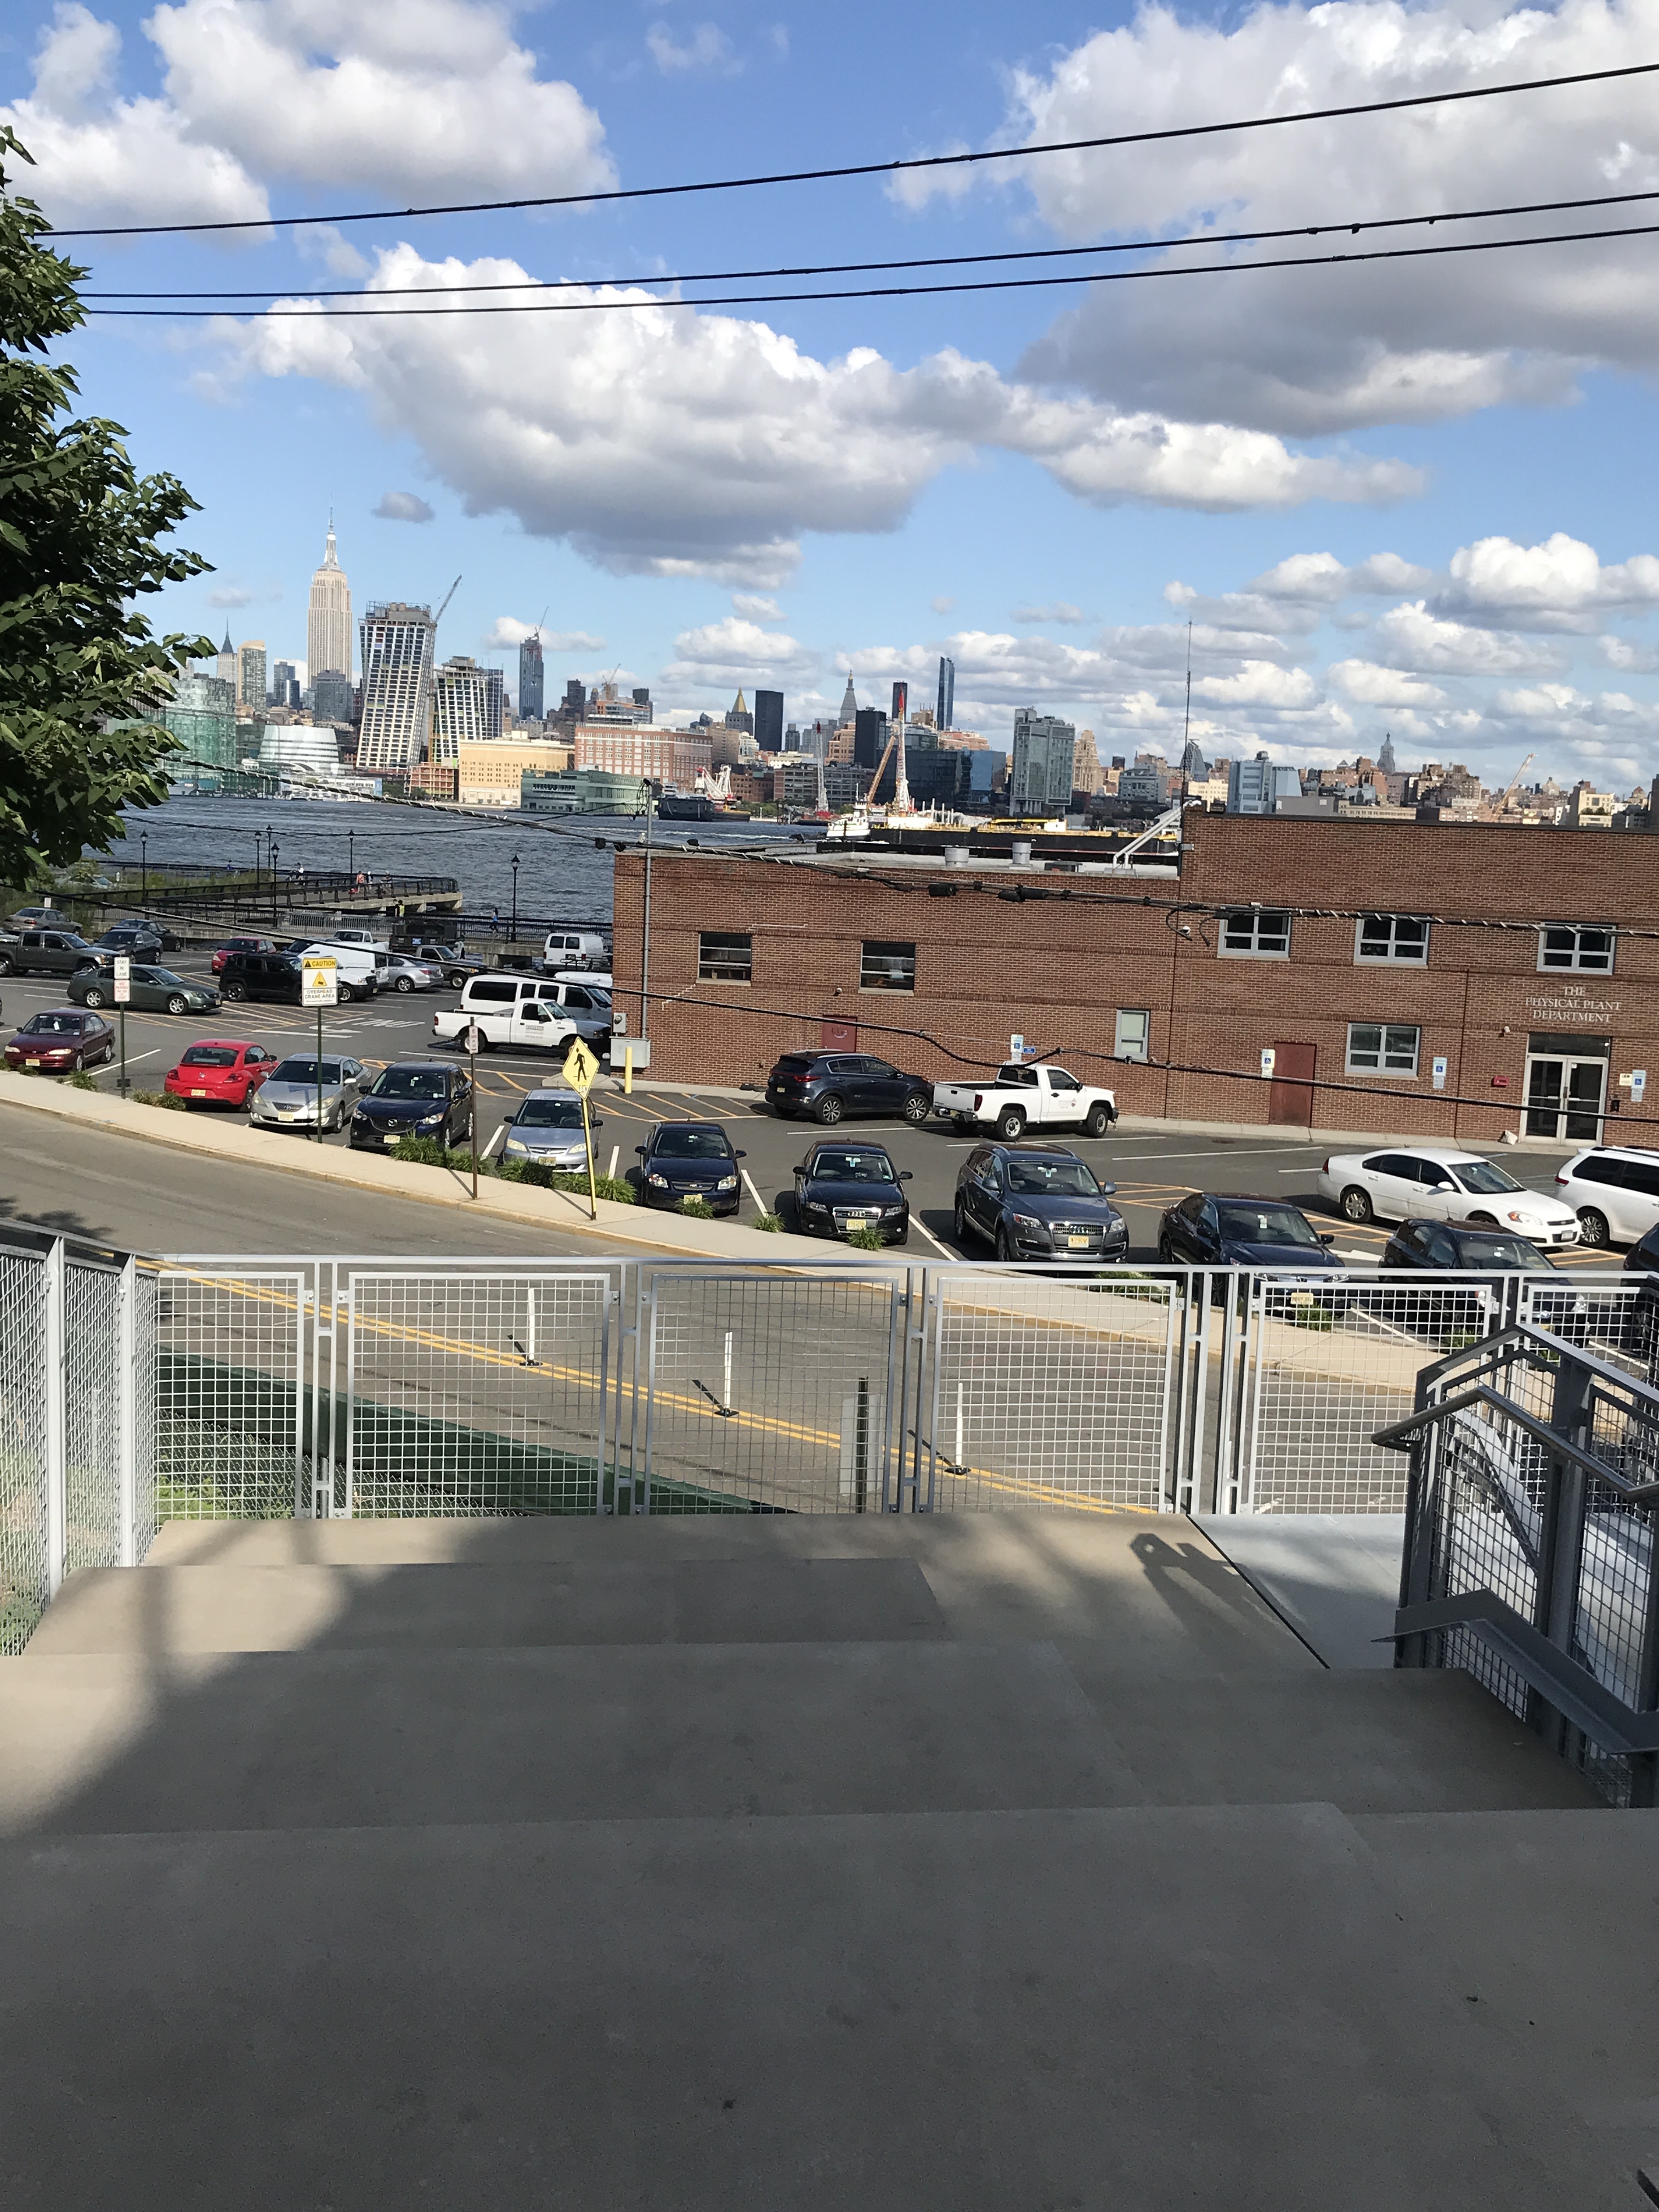 Leonard Cohen exhibit (I hadn't been to the Hoboken waterfront in over a year - the new concrete and steel staircase structure going up to Stevens)